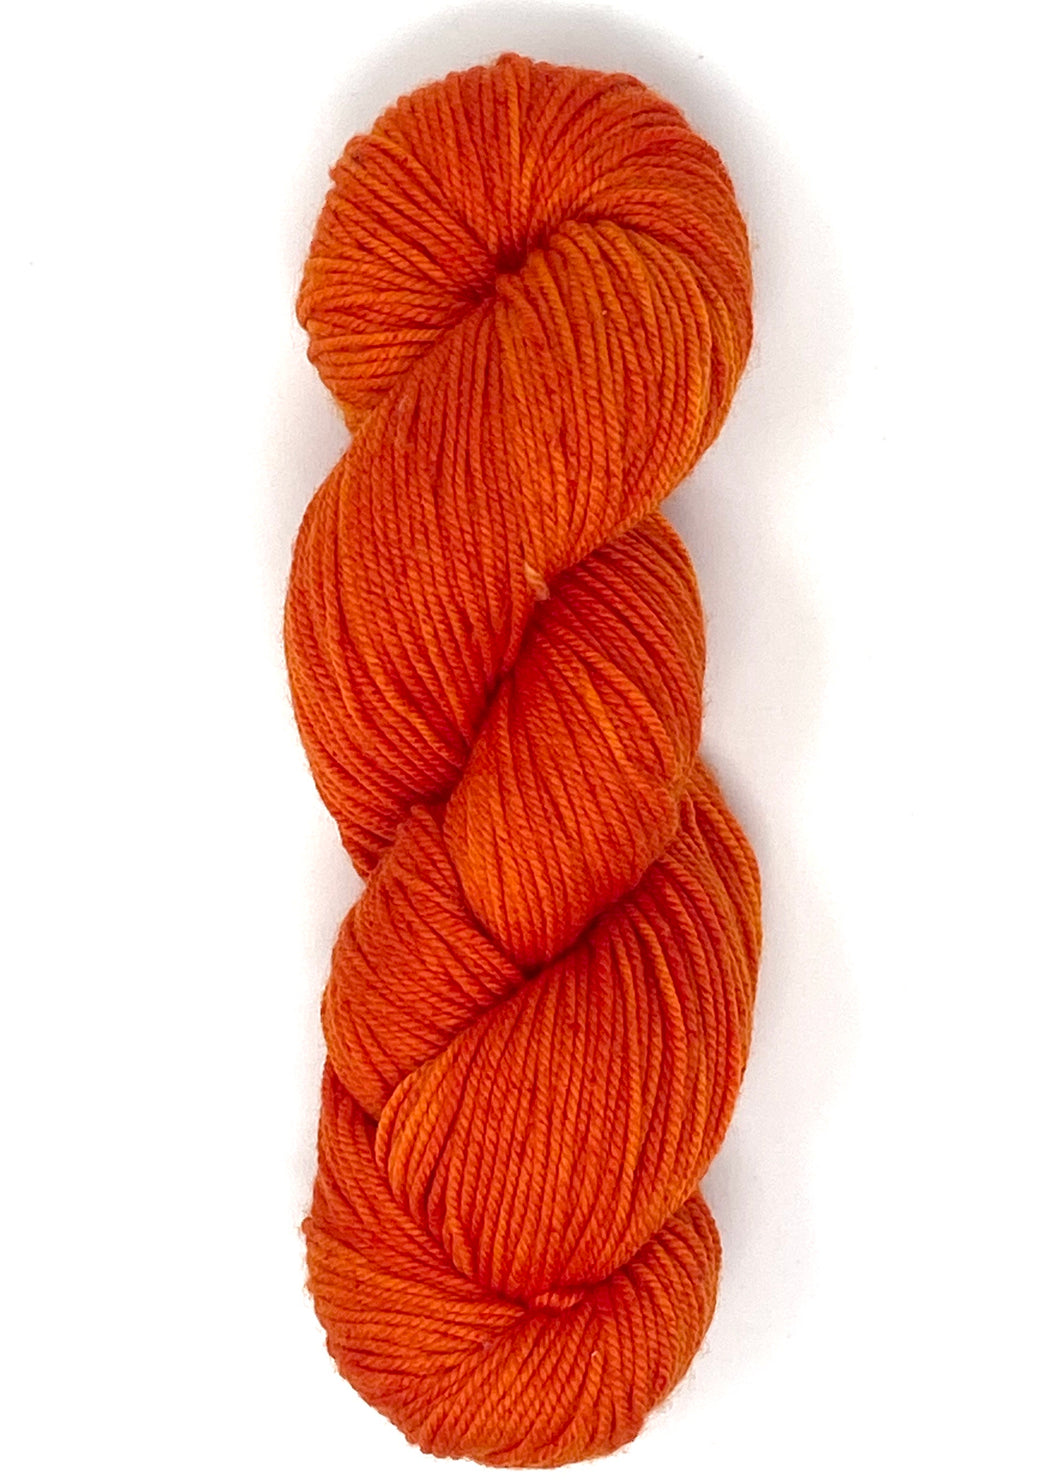 Sunrise - Baah Yarn Sonoma